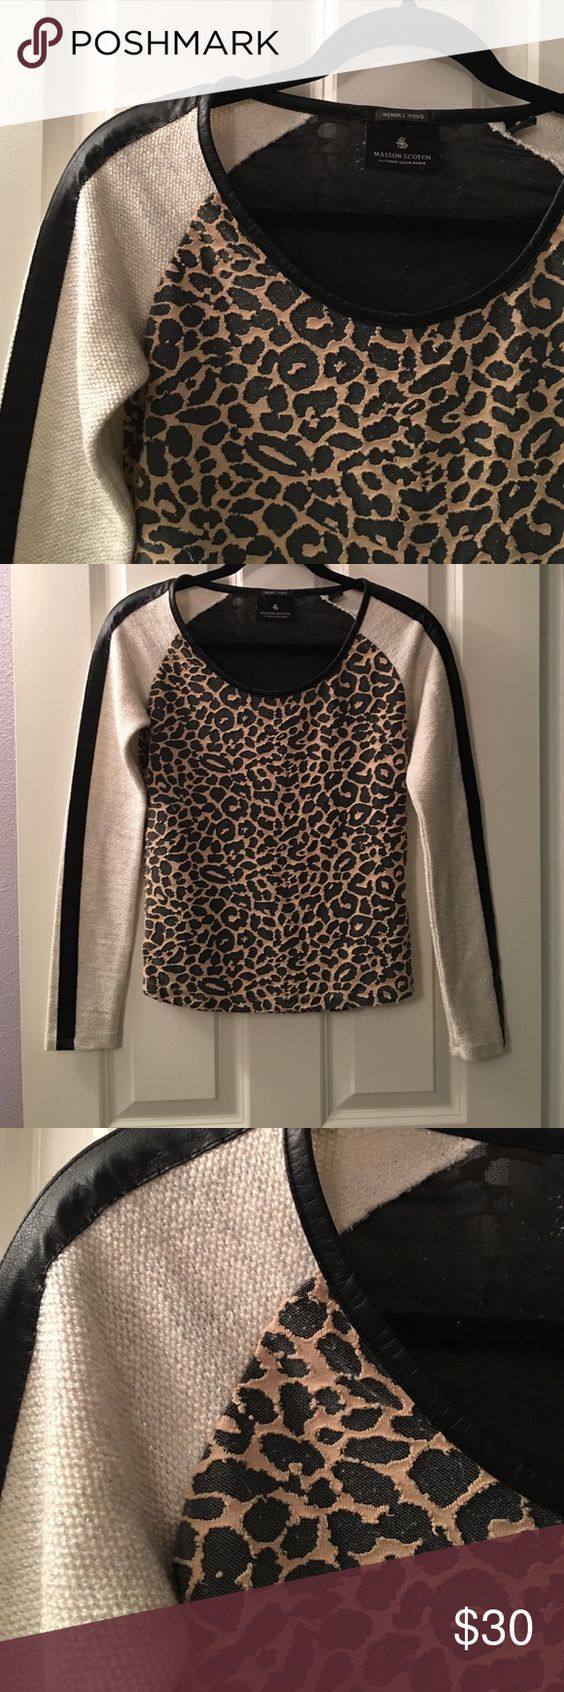 Maison Scotch pleather and leopard sweater Edgy leather like trim and leopard baseball style sweater.   Leather like trim around neckline and down both arms.  Metallic thread weaved through sweater portion of both arms.  Textured leopard print on front and back.  Very sexy.  Excellent condition. Maison Scotch Sweaters Crew & Scoop Necks